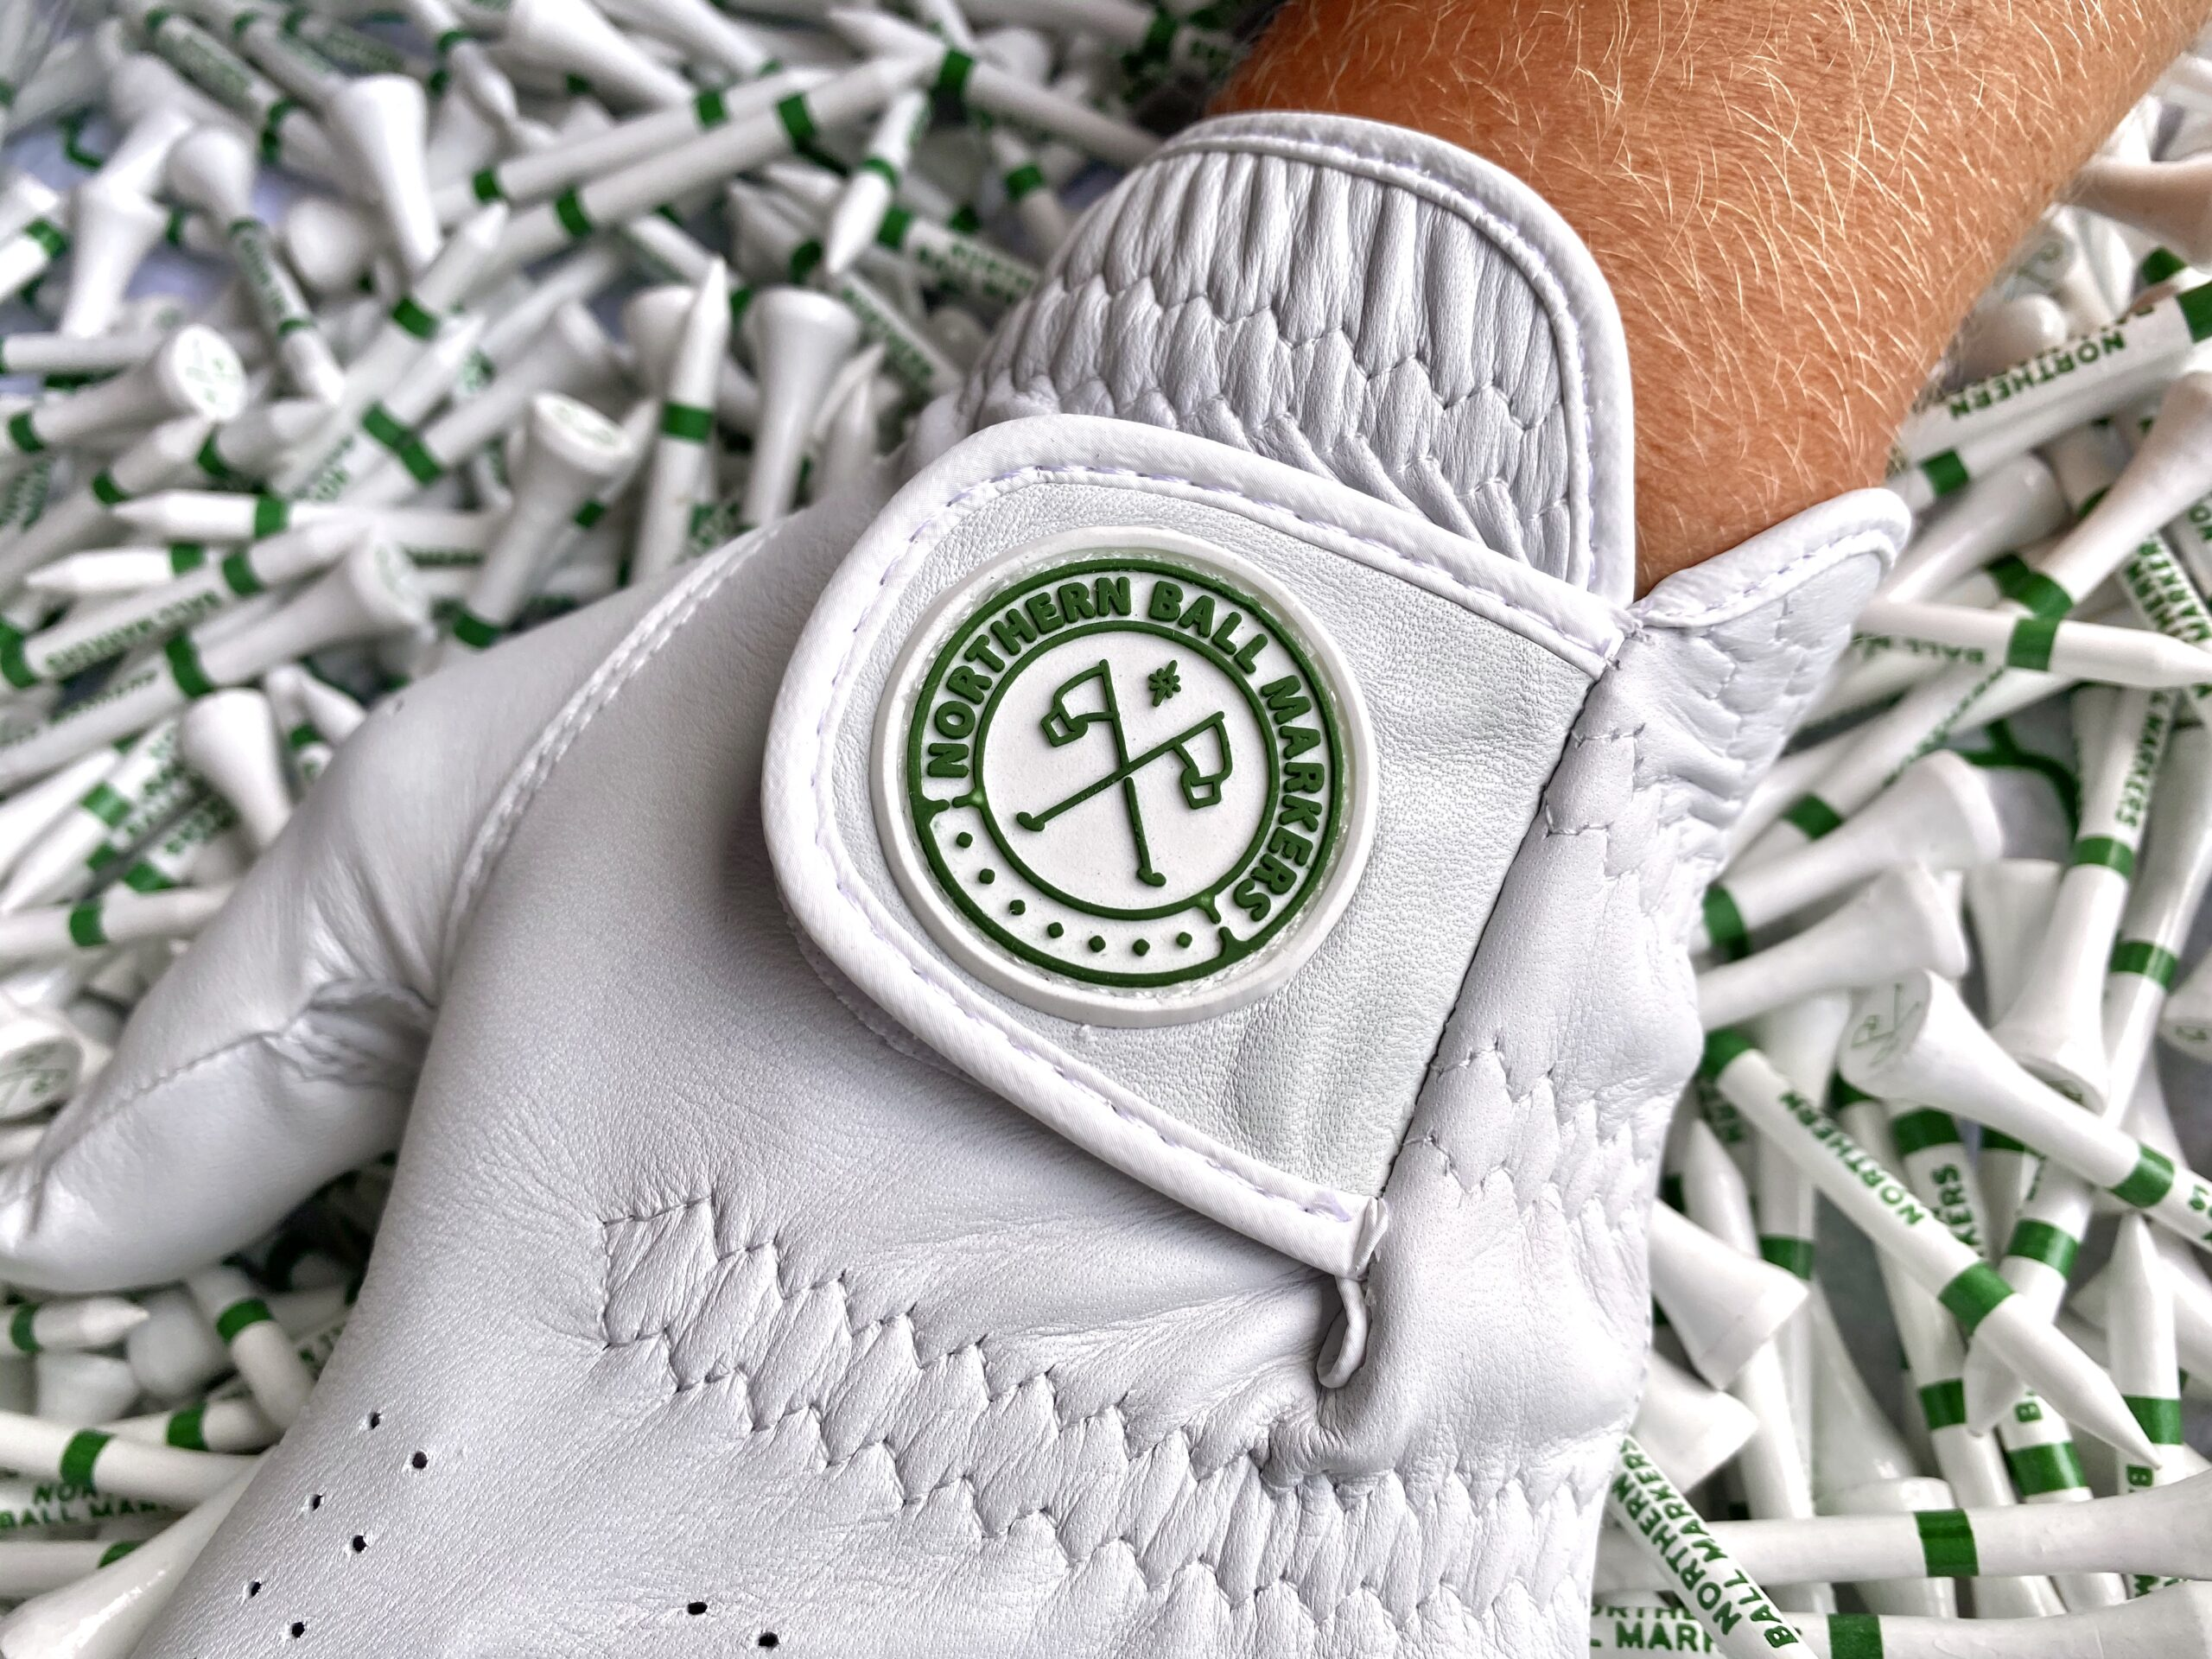 Northern Ball Markers golf glove design in white with green emblem